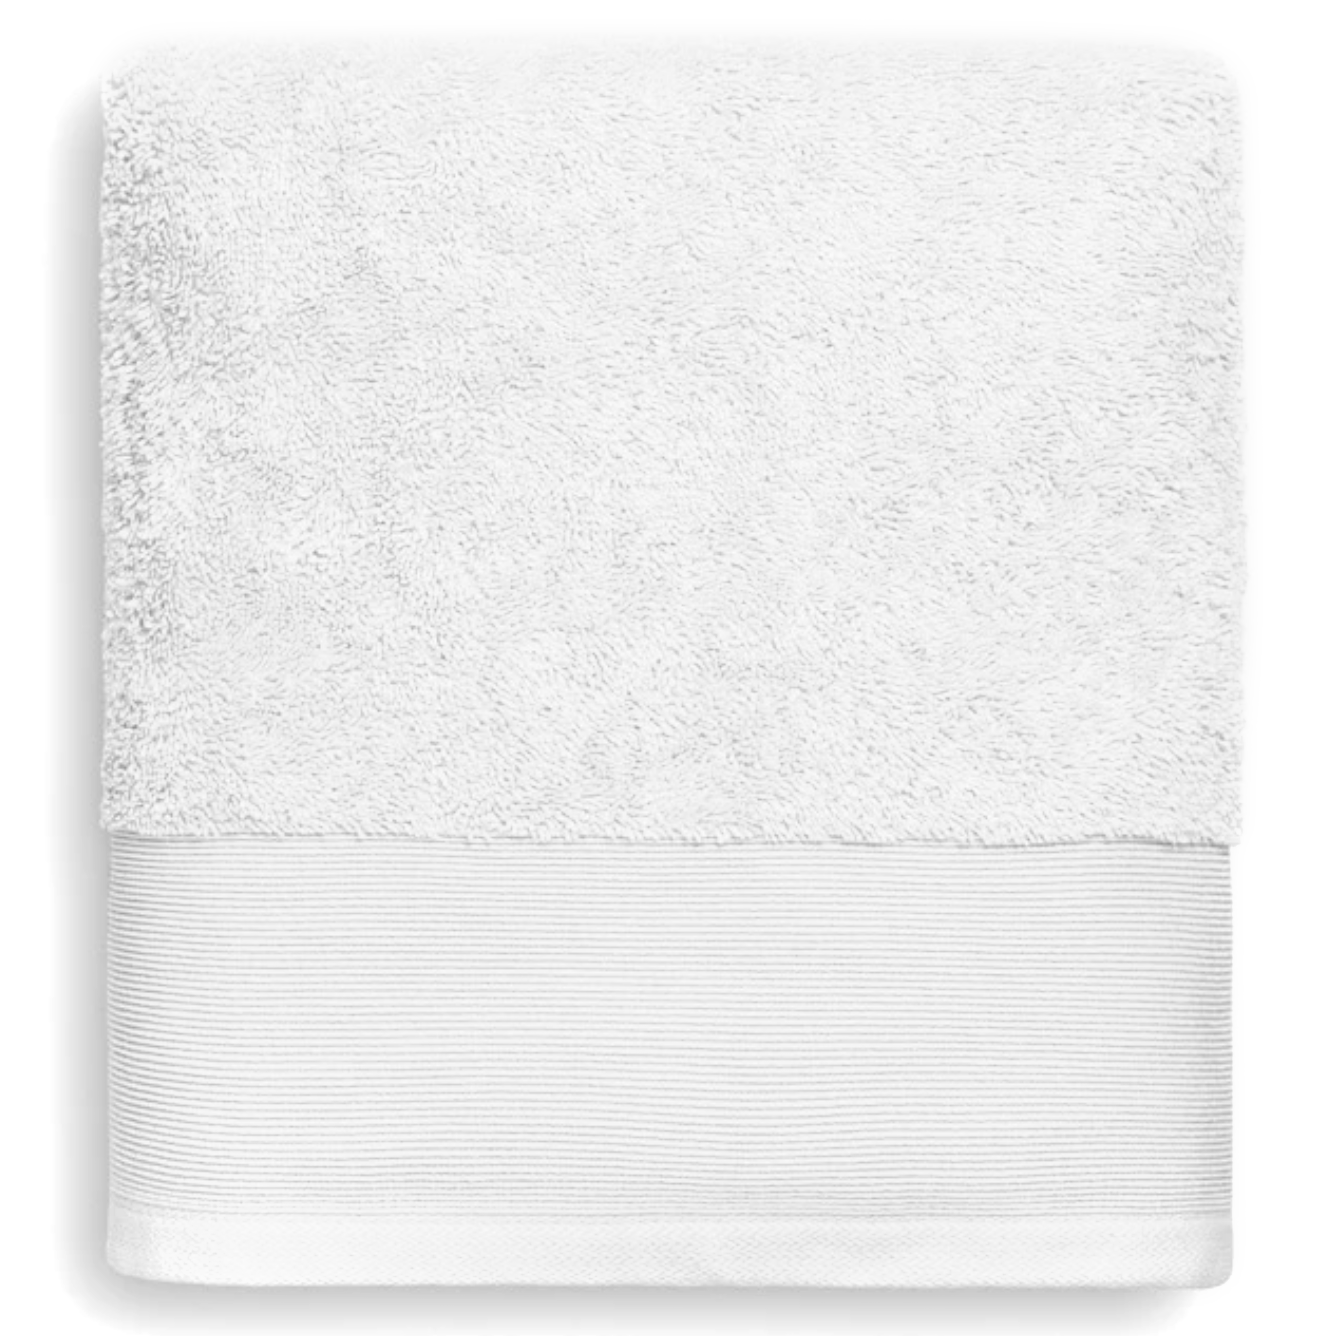 Silvon Acne Fighting Towels